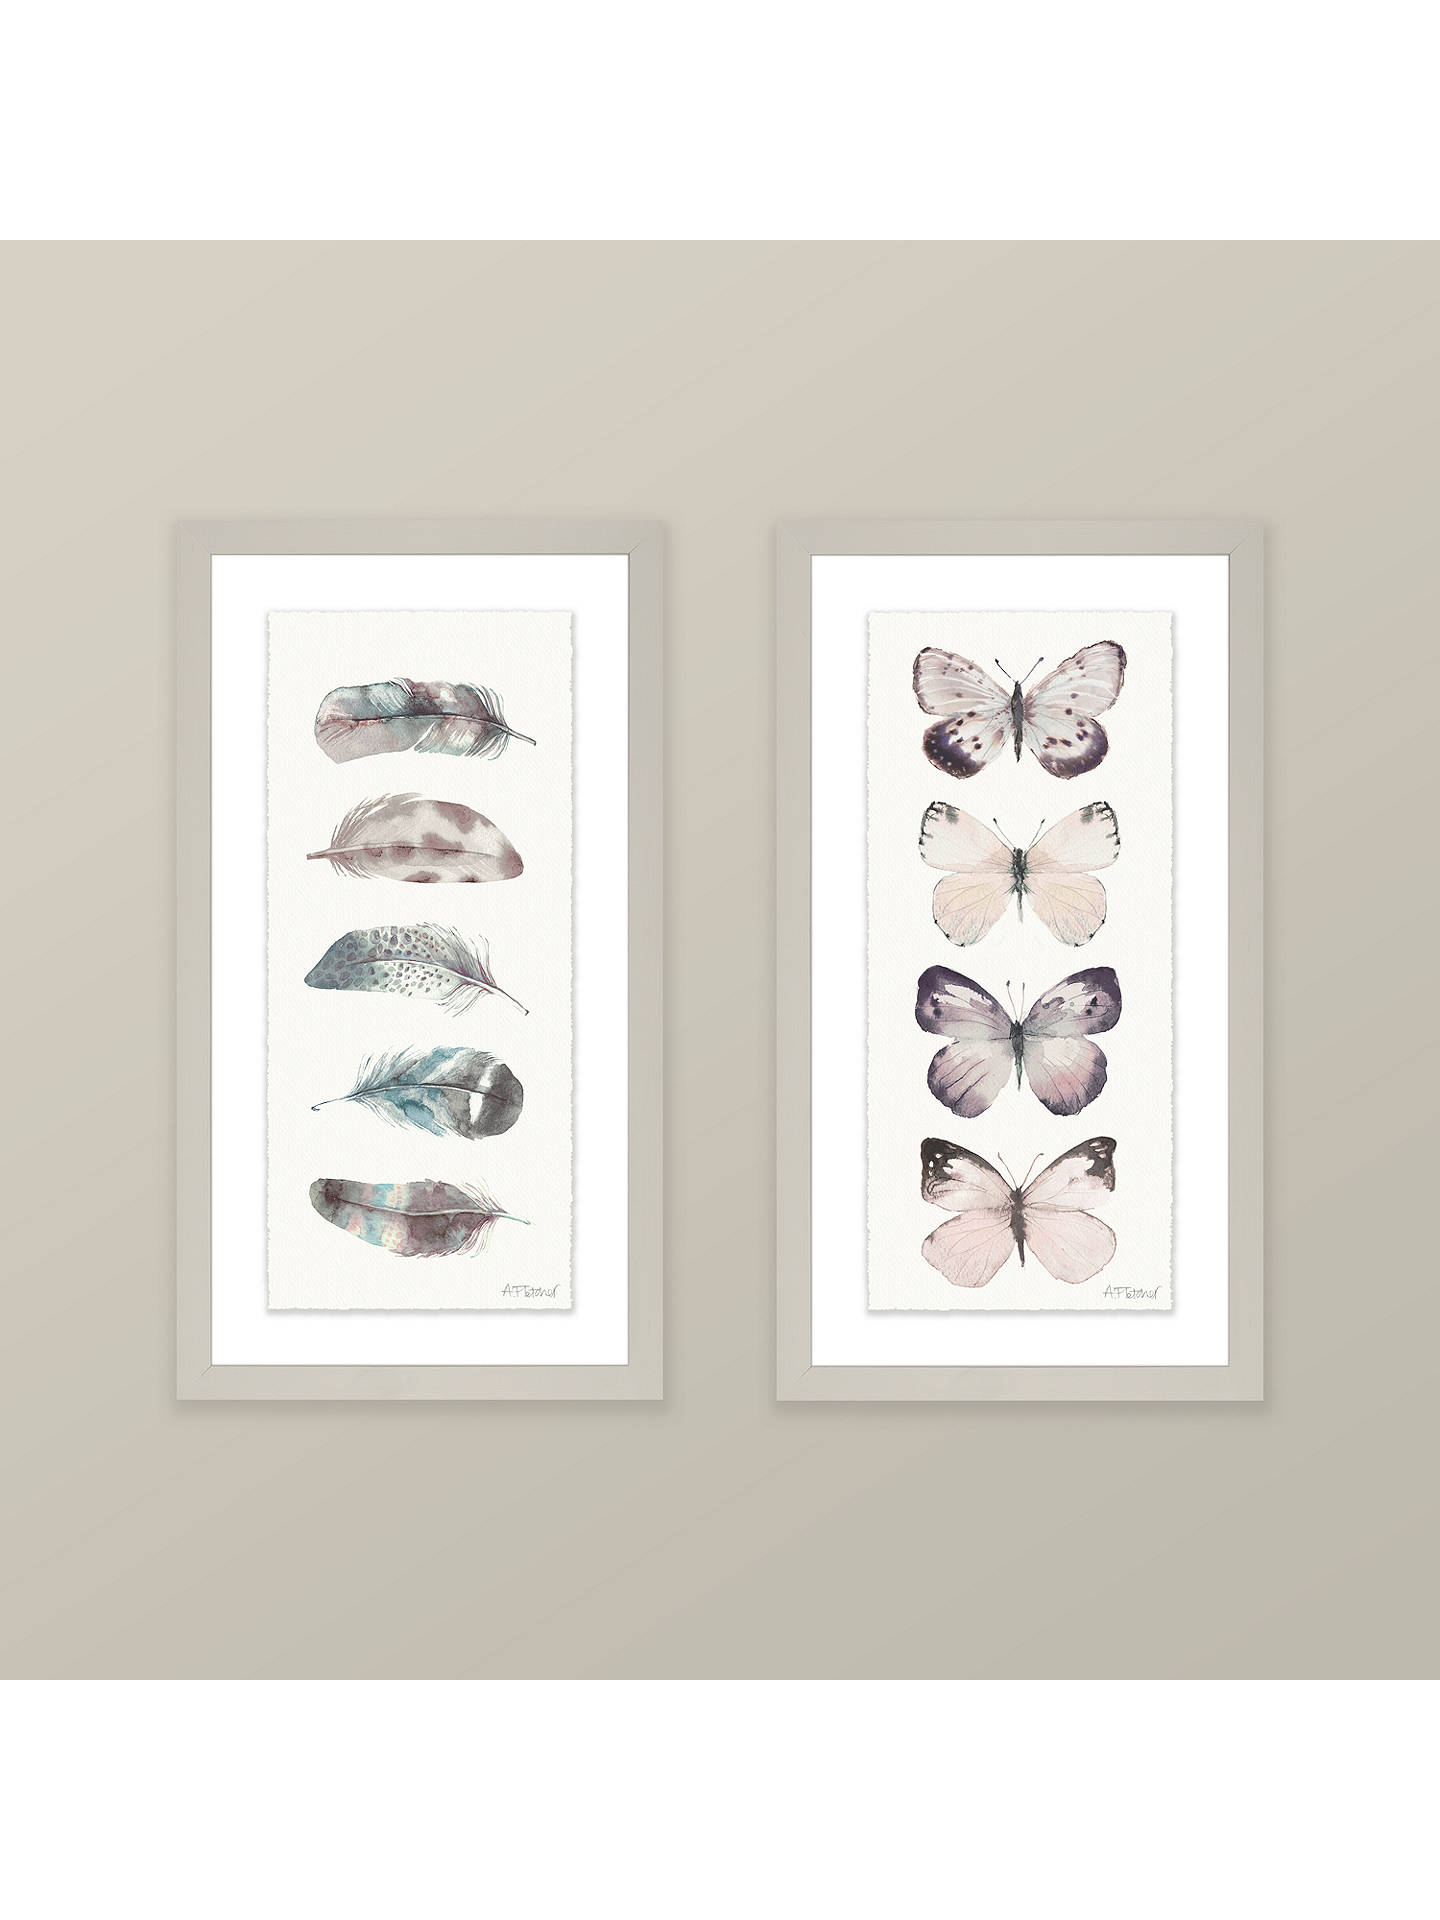 BuyAdelene Fletcher - Watercolour Feathers Framed Print & Mount, 38 x 21cm Online at johnlewis.com